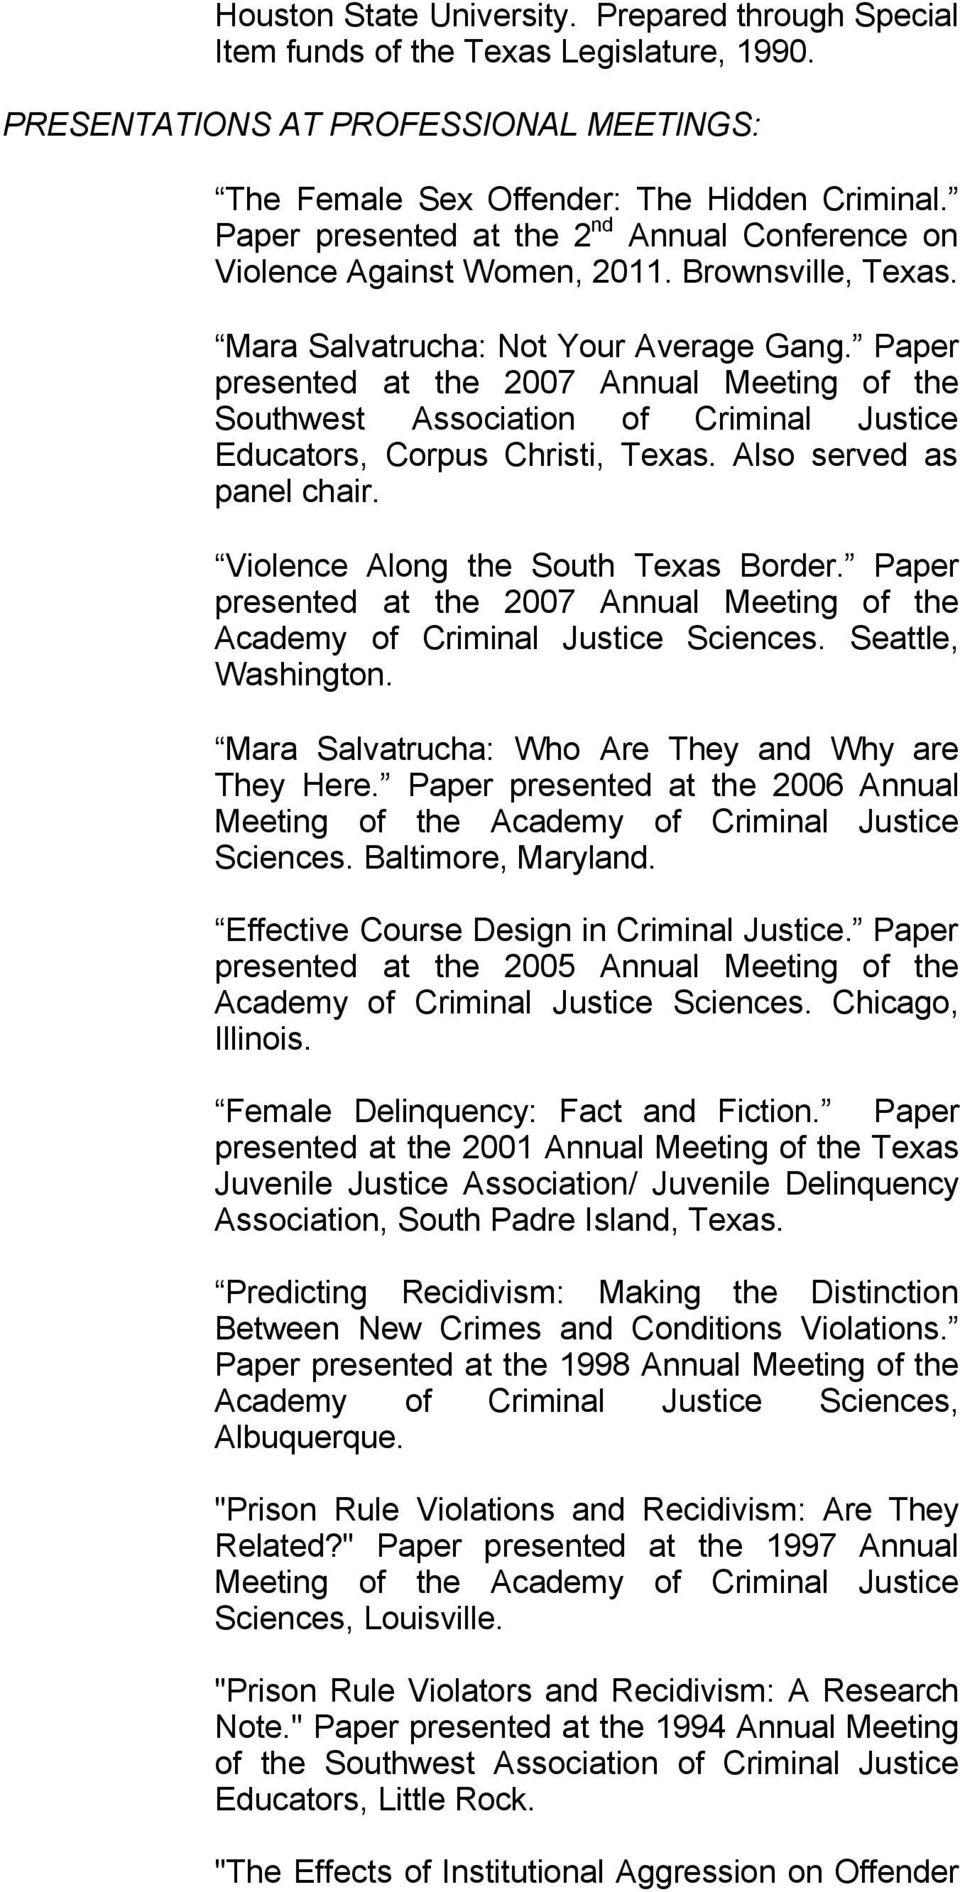 Paper presented at the 2007 Annual Meeting of the Southwest Association of Criminal Justice Educators, Corpus Christi, Texas. Also served as panel chair. Violence Along the South Texas Border.